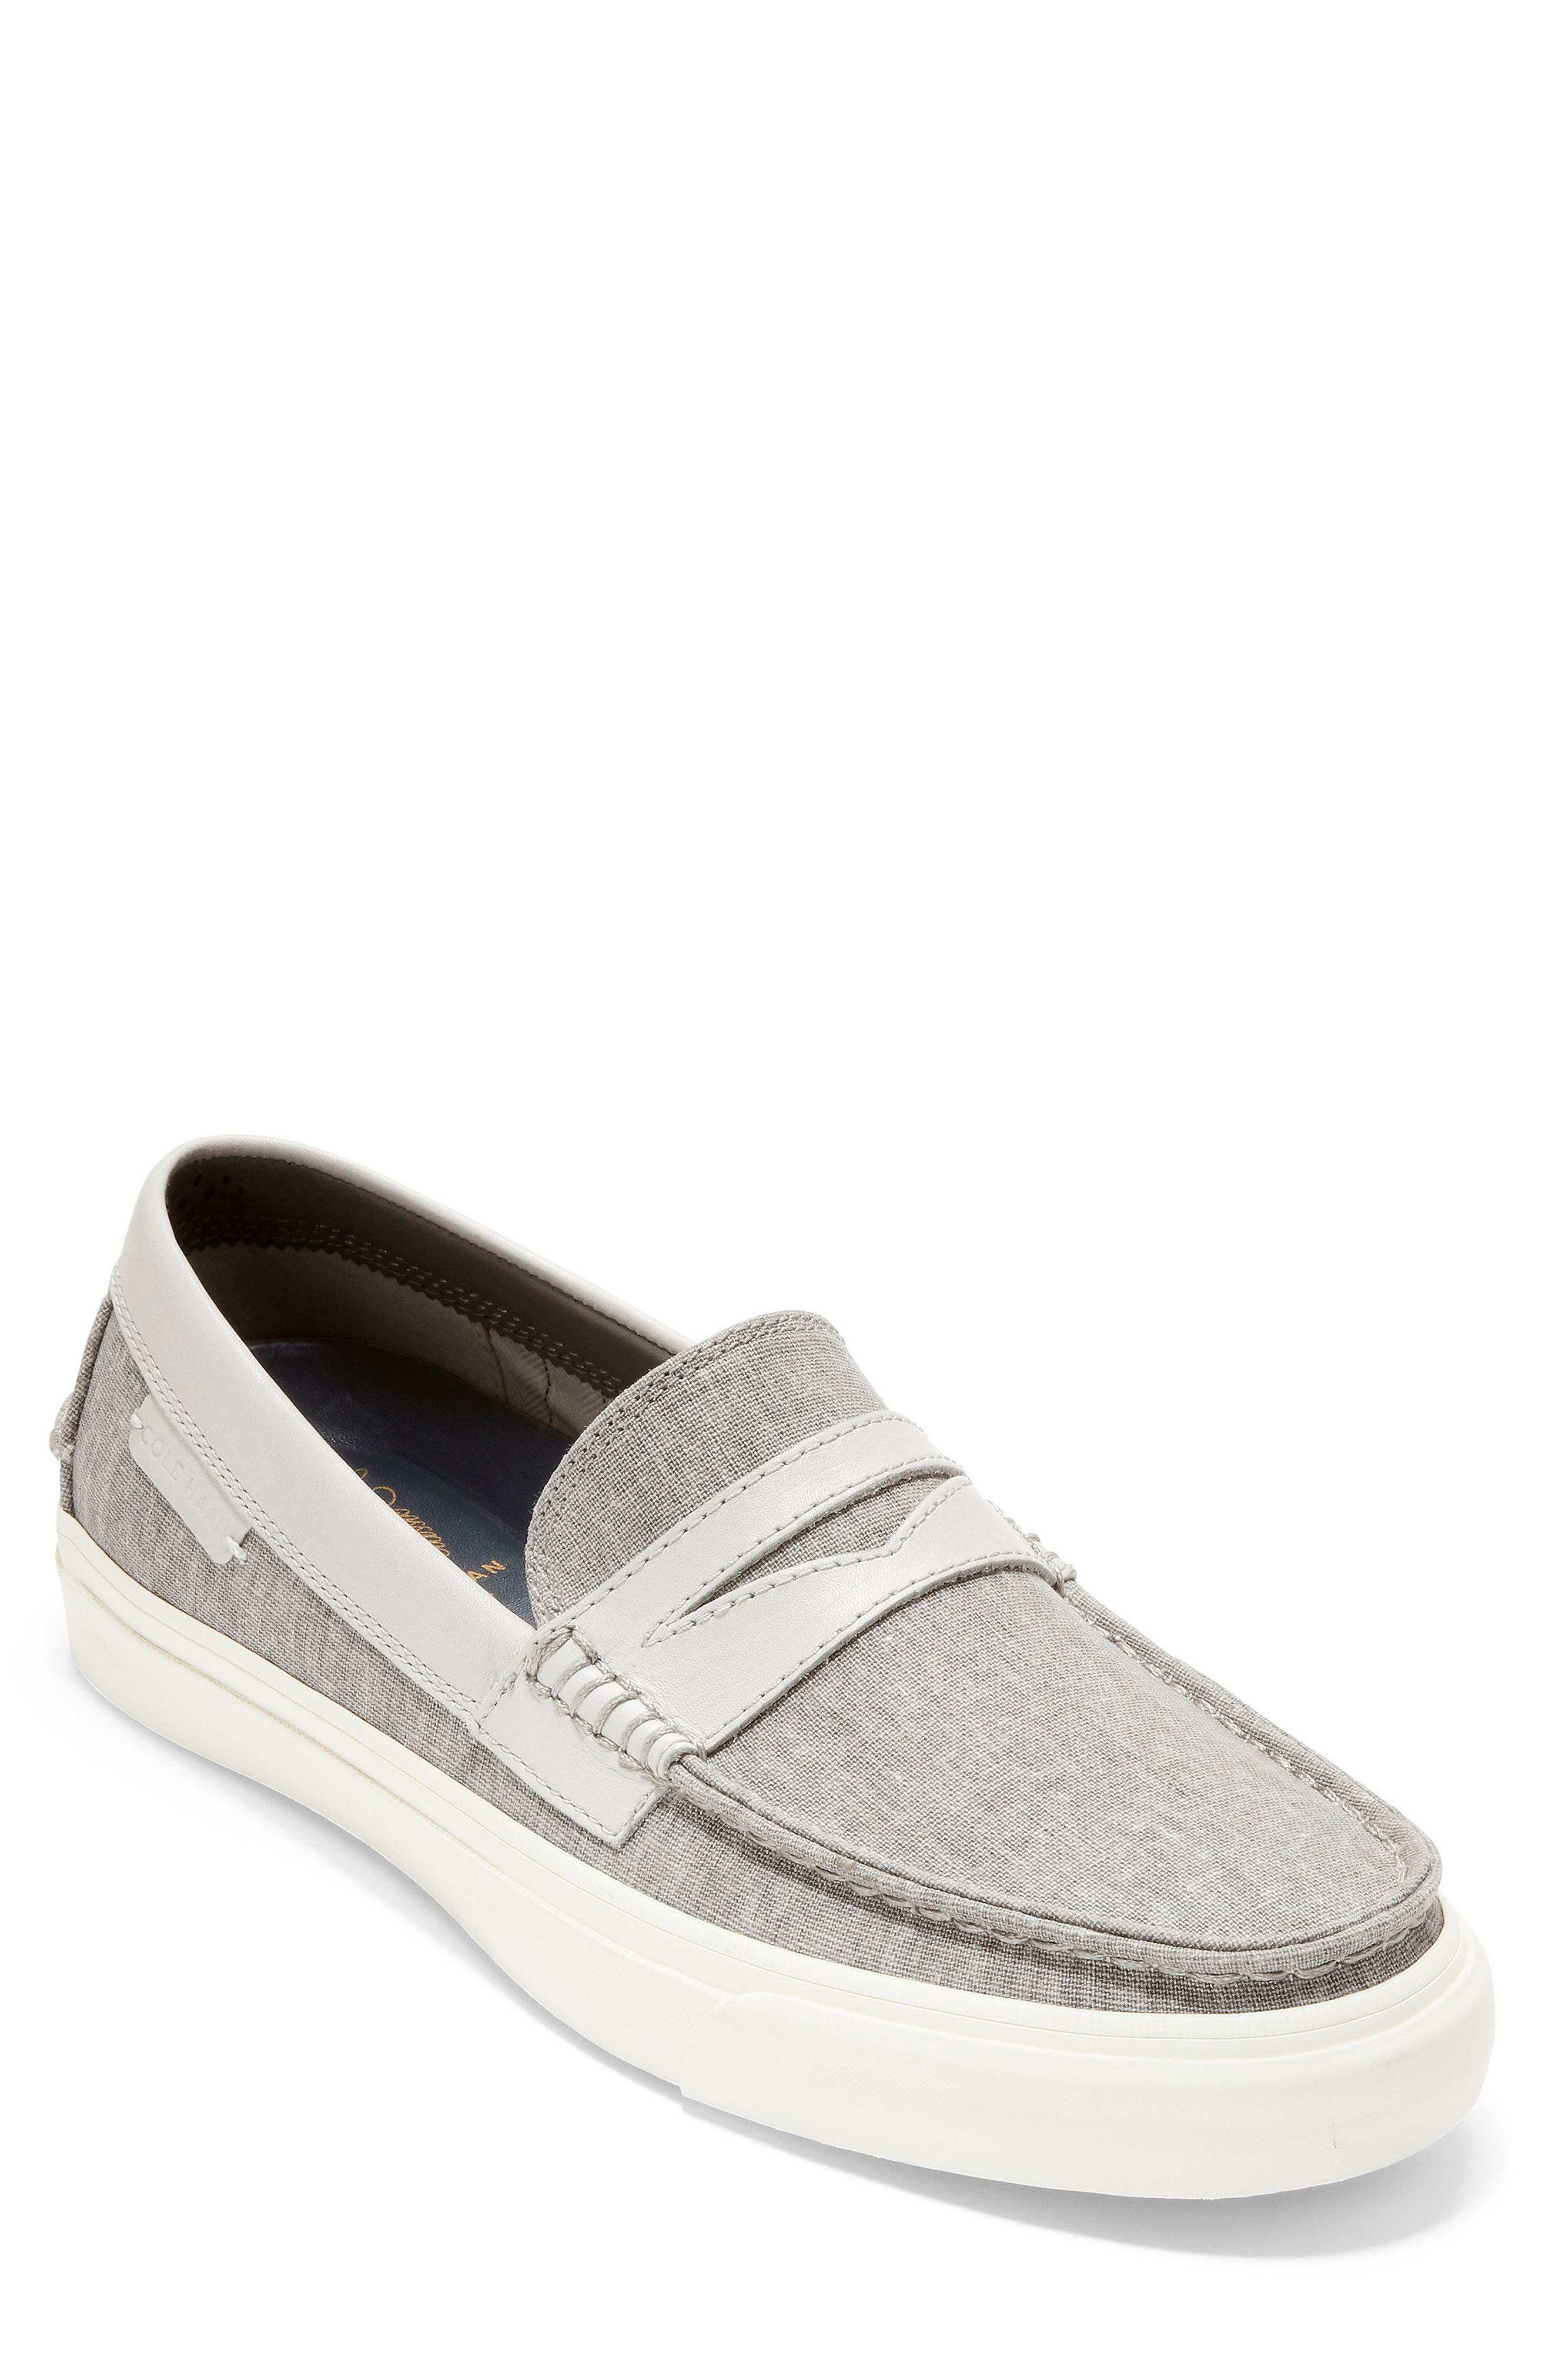 Pinch Weekend LX Penny Loafer,                             Main thumbnail 2, color,